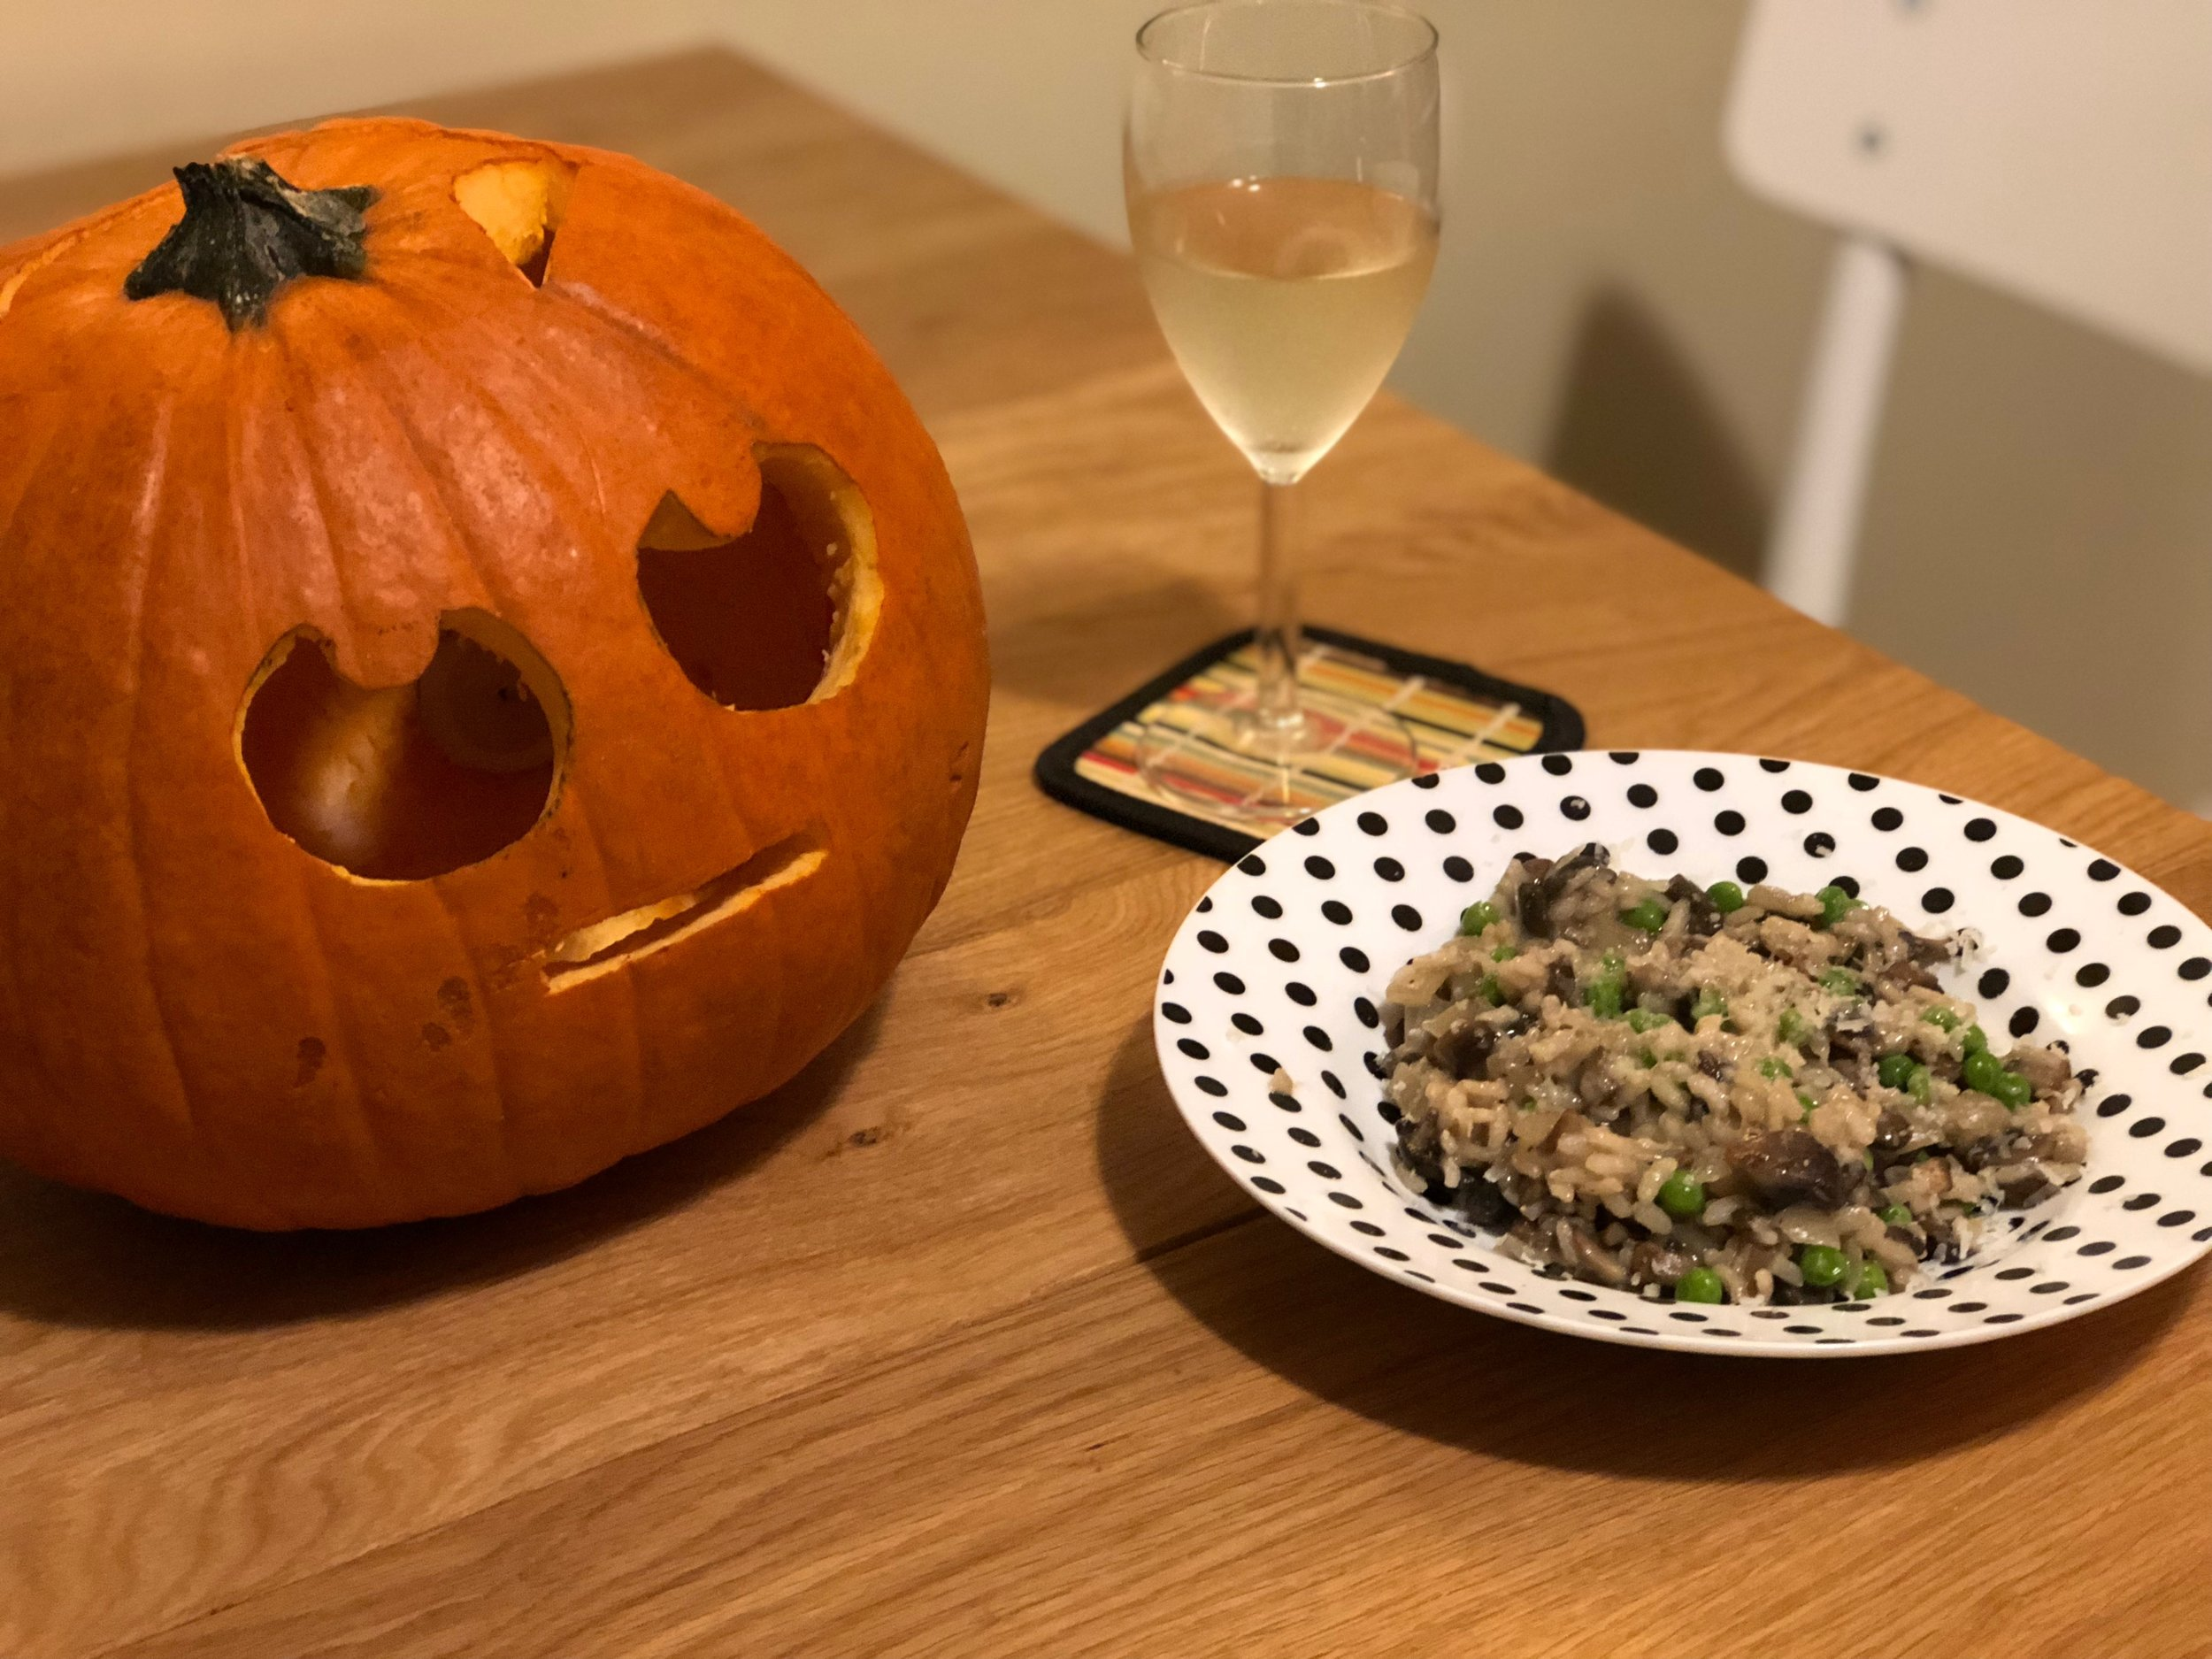 This pumpkin was not impressed with my risotto, considering how long it takes to cook it properly.